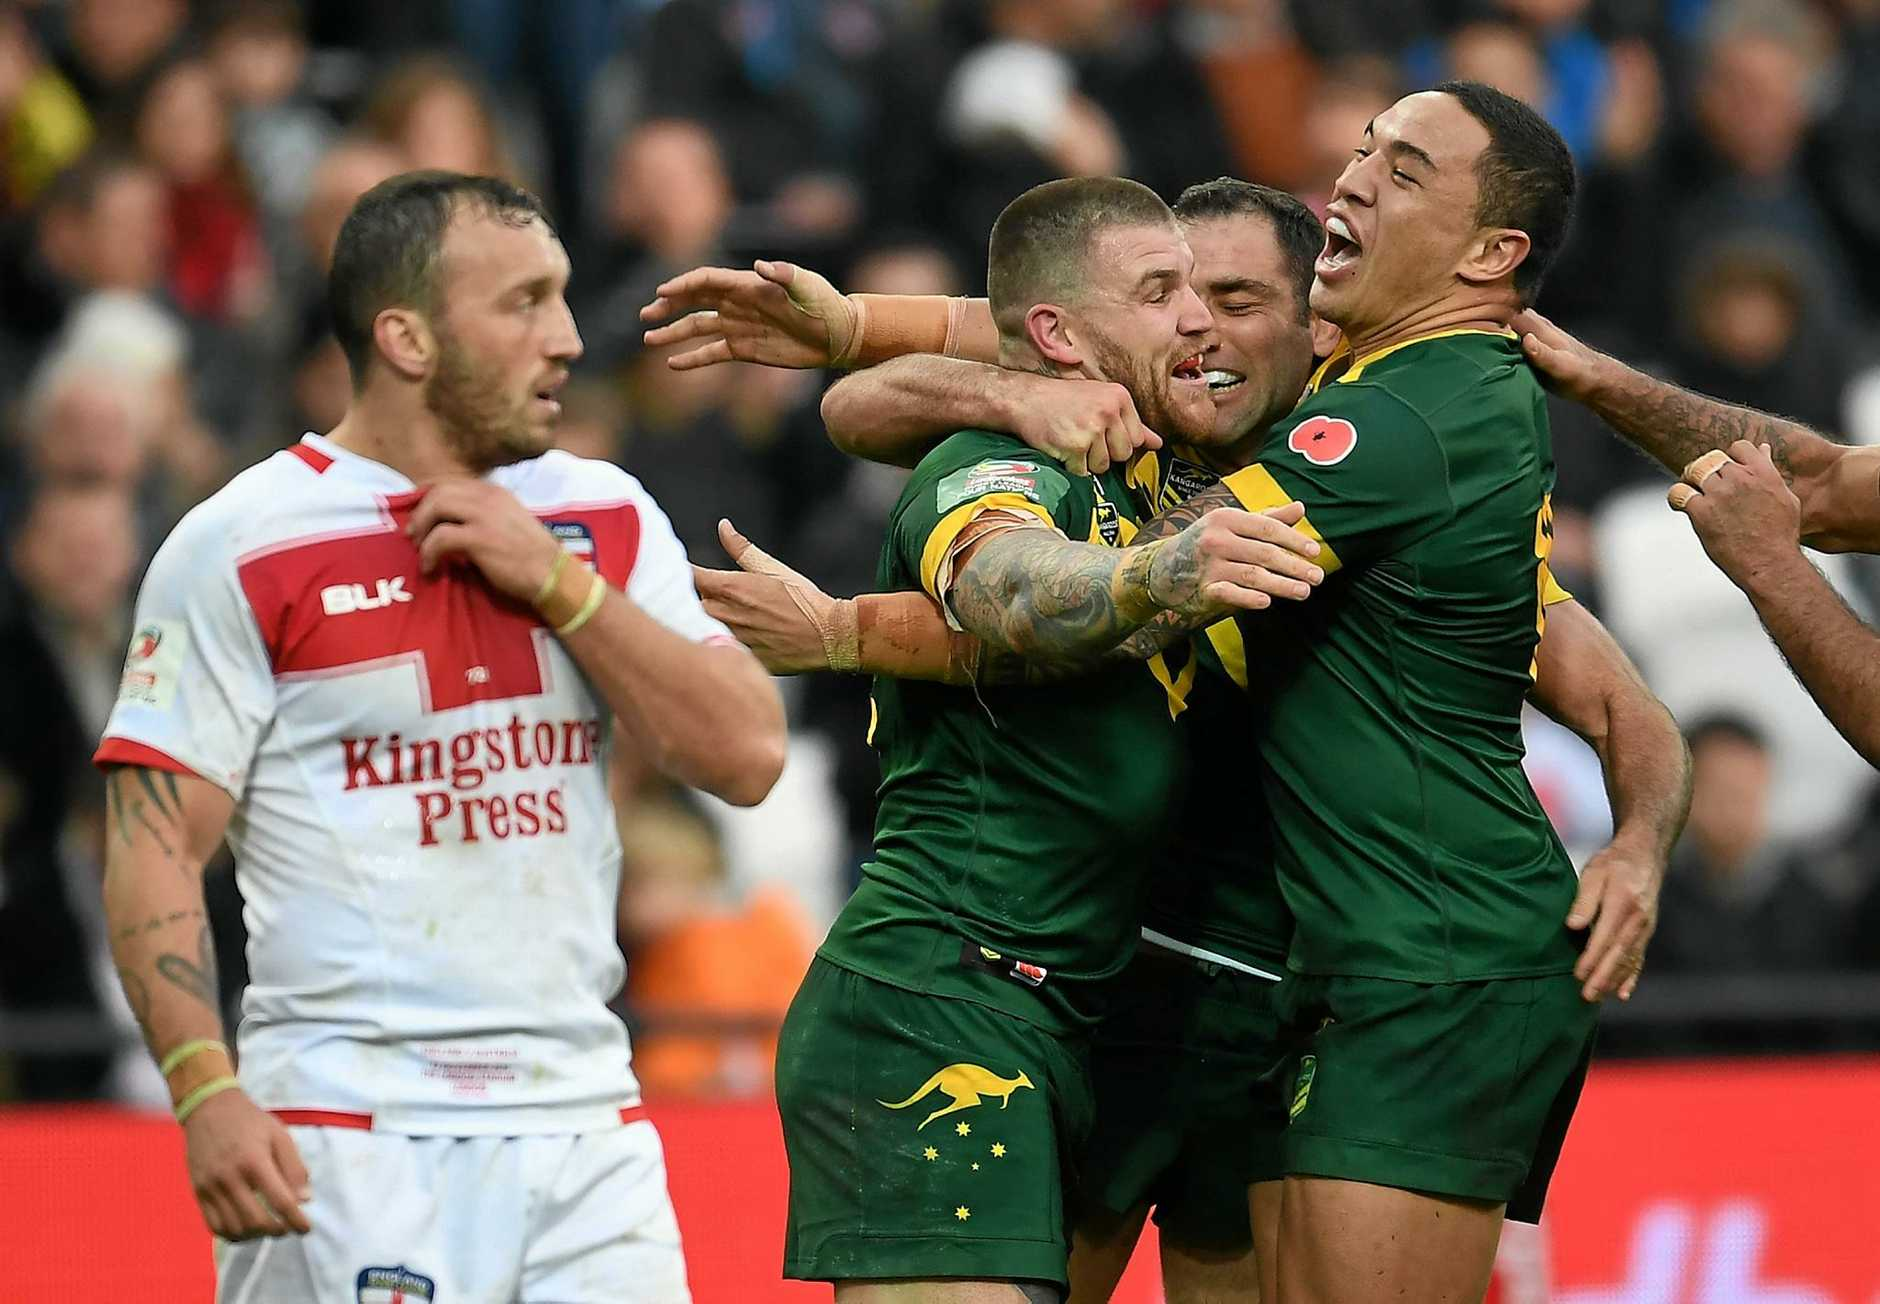 Josh Dugan celebrates with Australian teammates after scoring a try against England.